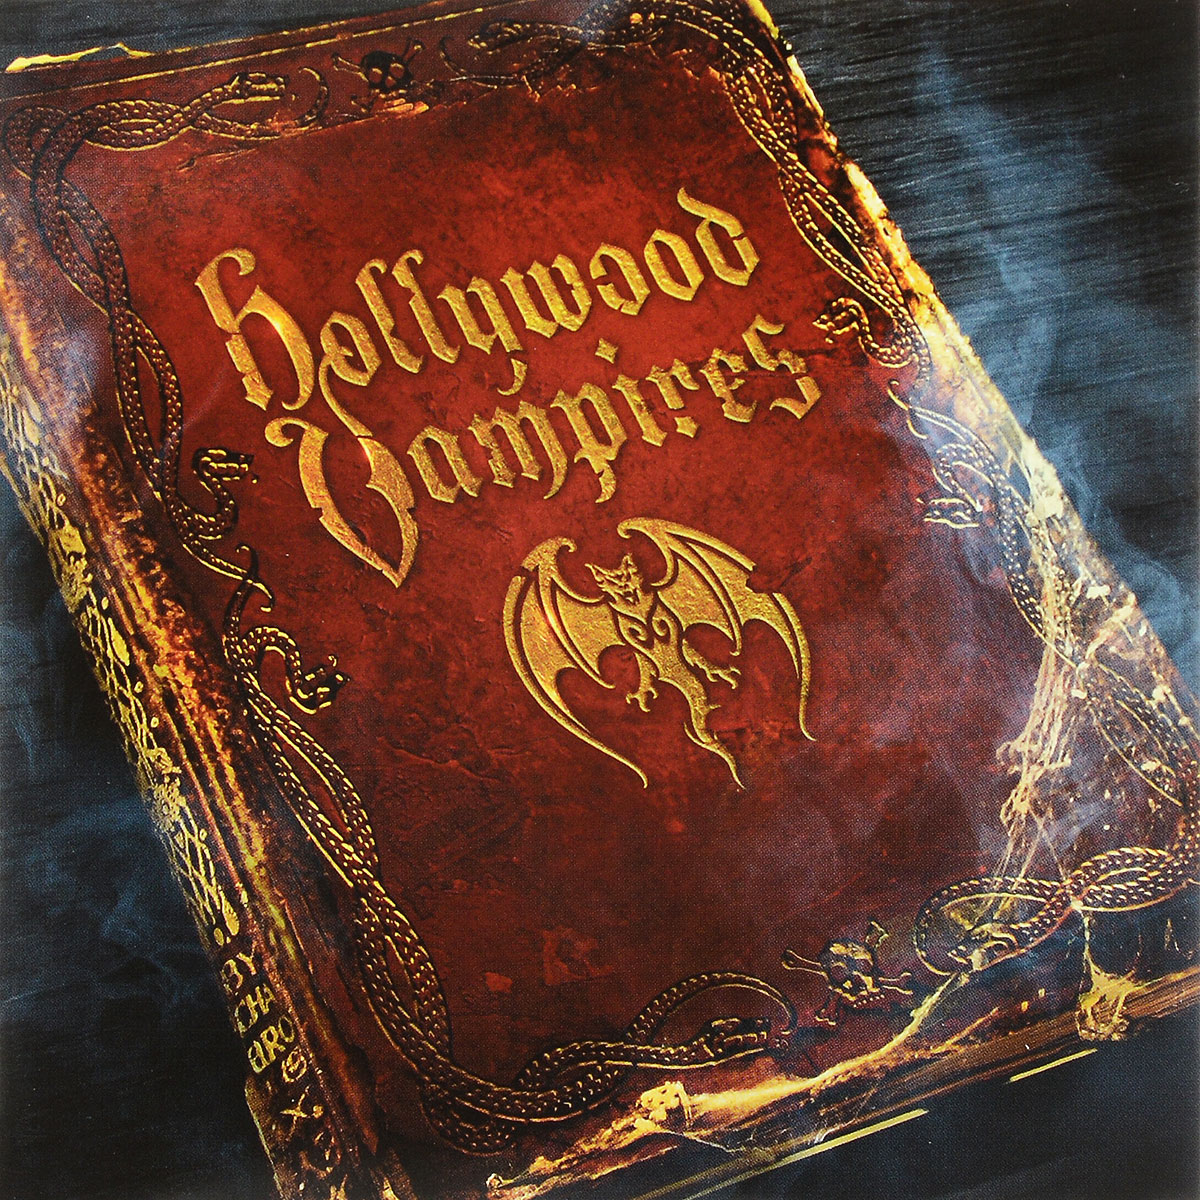 Hollywood Vampires Hollywood Vampires. Hollywood Vampires gothic art vampires witches demons dragons werewolves